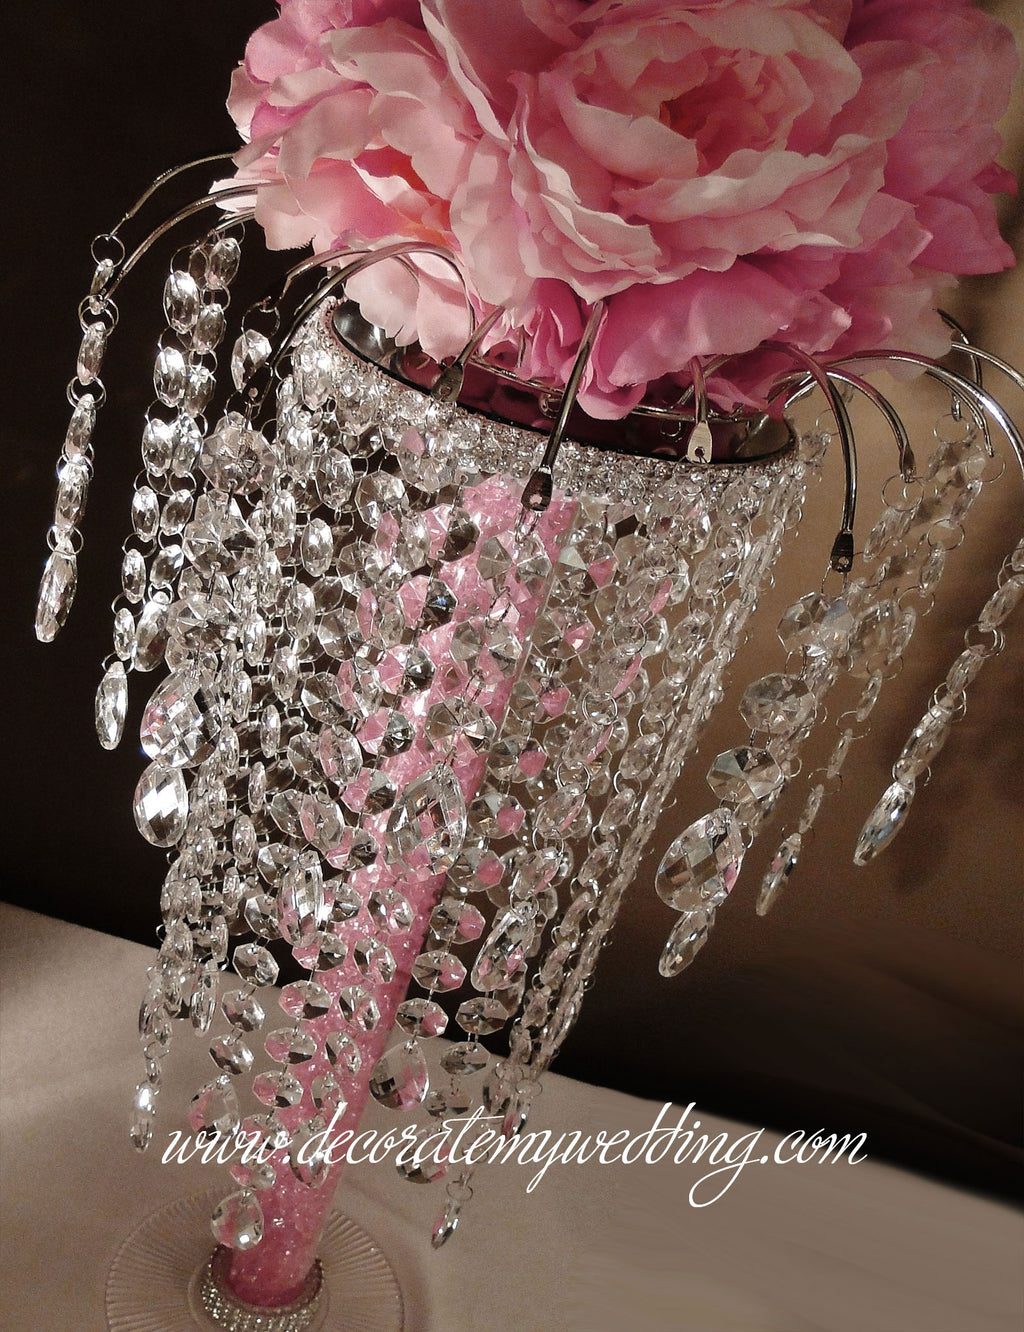 This is a reception centerpiece that people will be talking about long after the wedding. Sparkling crystal beads dangle from a graceful arch with romantic pink accents.